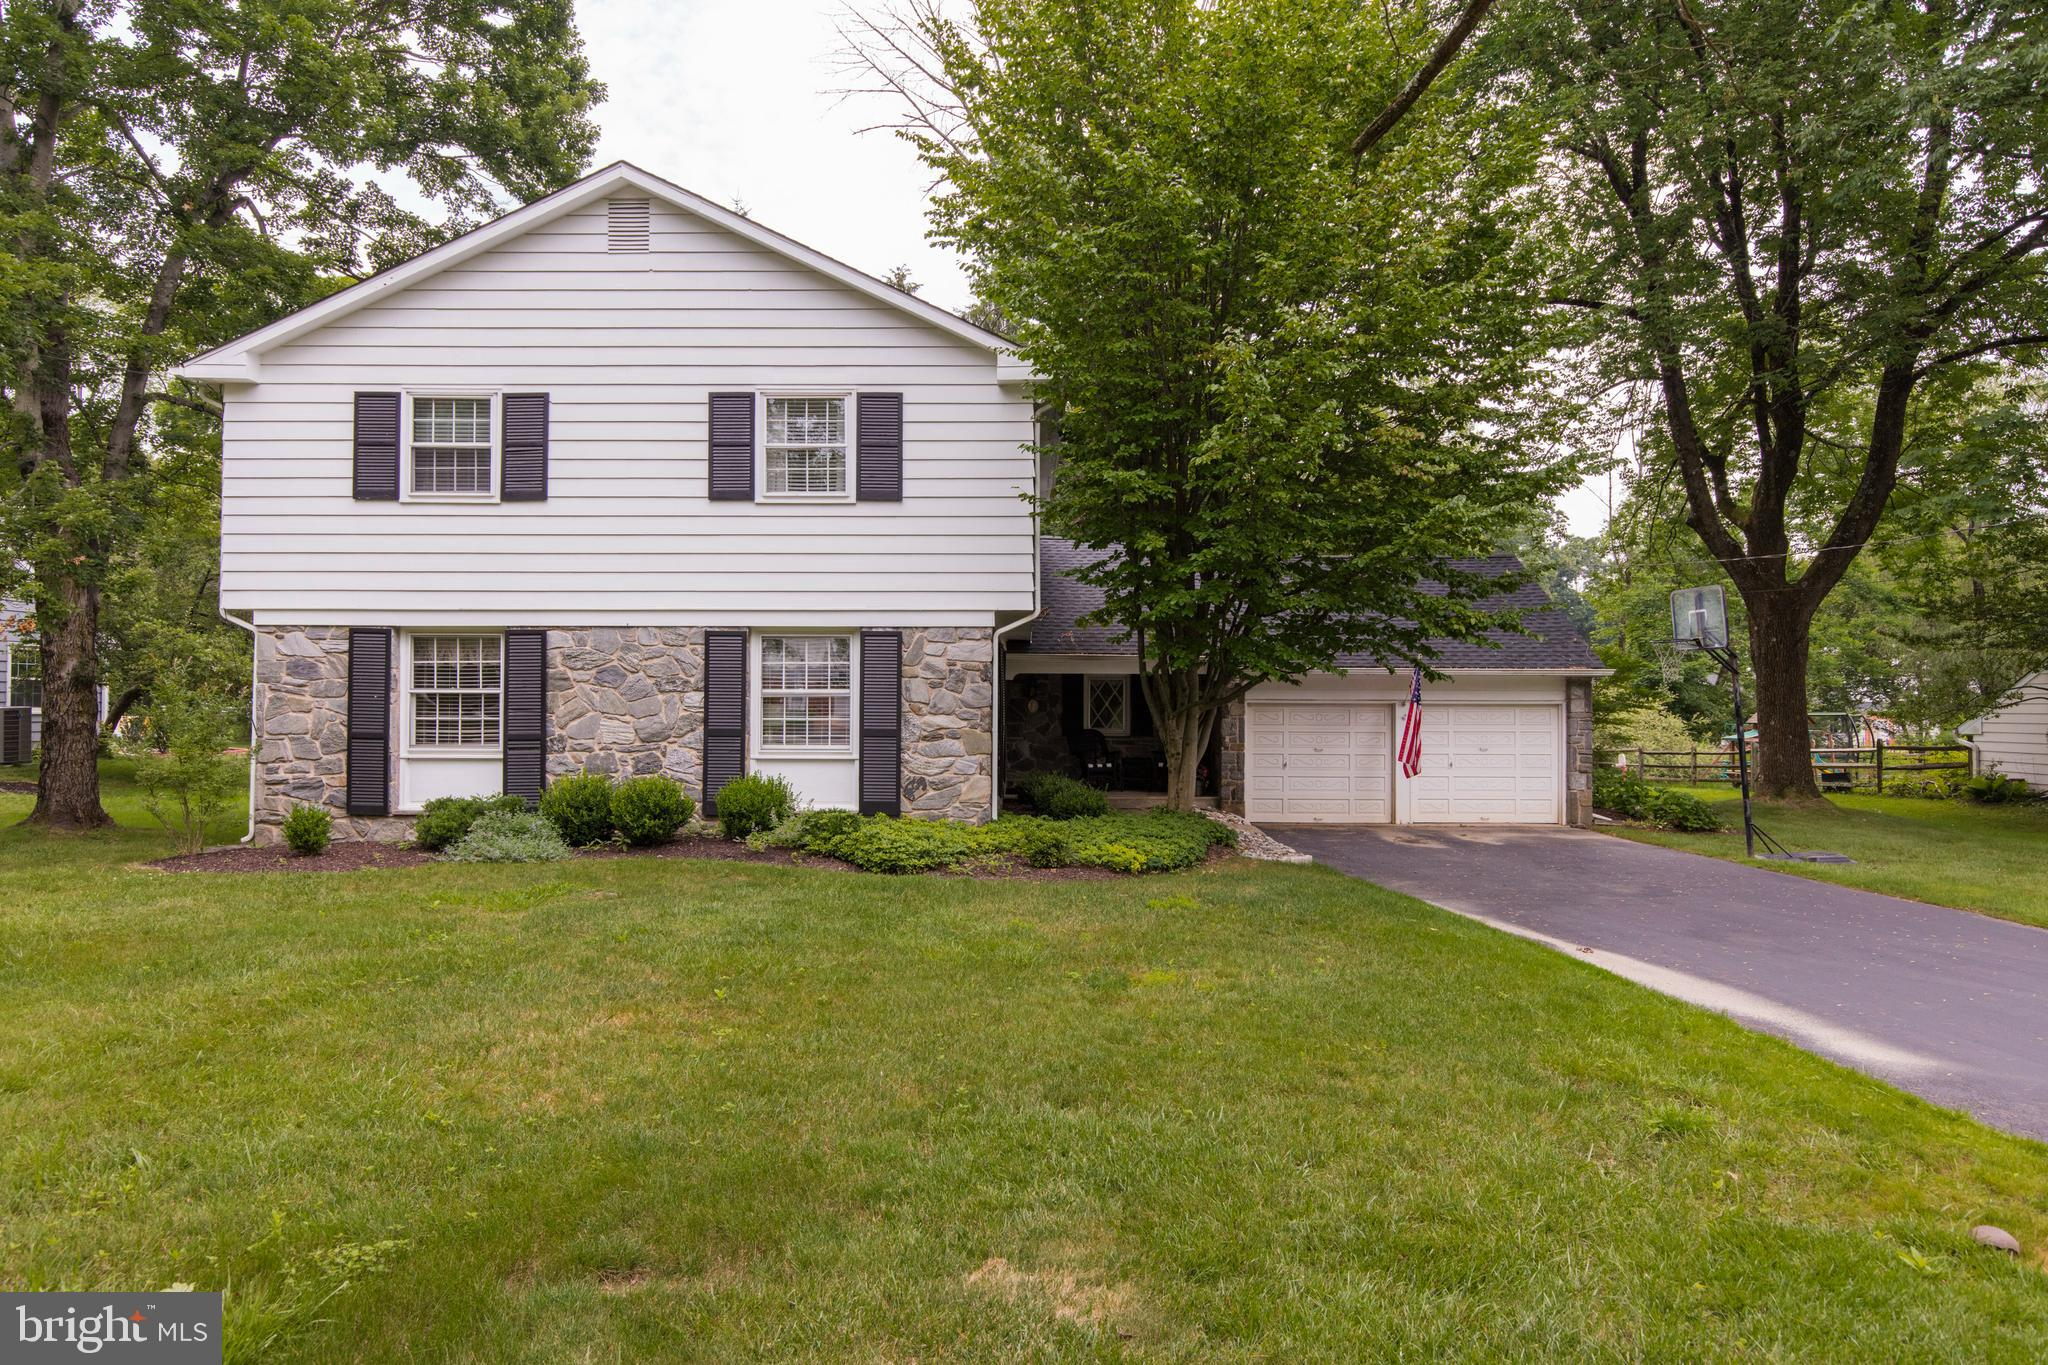 Welcome to 595 Watford Lane in the desirable Devon Downs neighborhood! Walk to Devon Yard (Anthropologie, Terrain, Amis Trattoria), the Devon Horse Show and Septa Devon Train Station. Close to major highways, the Farmer's Market and all the Main Line has to offer. This 2-story Colonial on almost a half acre private lot is every host and hostess' dream!  Enter from a covered front porch into the center hall which leads to the living room and dining room with hardwood floors, the family room, the kitchen and the upstairs...a perfect layout for your holiday parties. Off the kitchen is a delightful sitting room with cozy gas fireplace, a lovely place for morning coffee or a glass of wine, and is truly the heart of the home. The sitting room also overlooks the back patio and fantastic back yard. Round the corner to the first floor full bathroom and family room with sliding glass doors to the back patio. The first floor laundry room has built-in cabinetry and access to the two car garage with garage door opener and plenty of storage. The second floor has 4 Bedrooms plus 1 Bonus Room and 2 Full bathrooms. The owner's bedroom has an en suite bathroom and walk in closet.  The backyard has beautiful landscaping and trees and leads to a cute stream to explore {See Flood Survey attached!} This home is where memories are made!